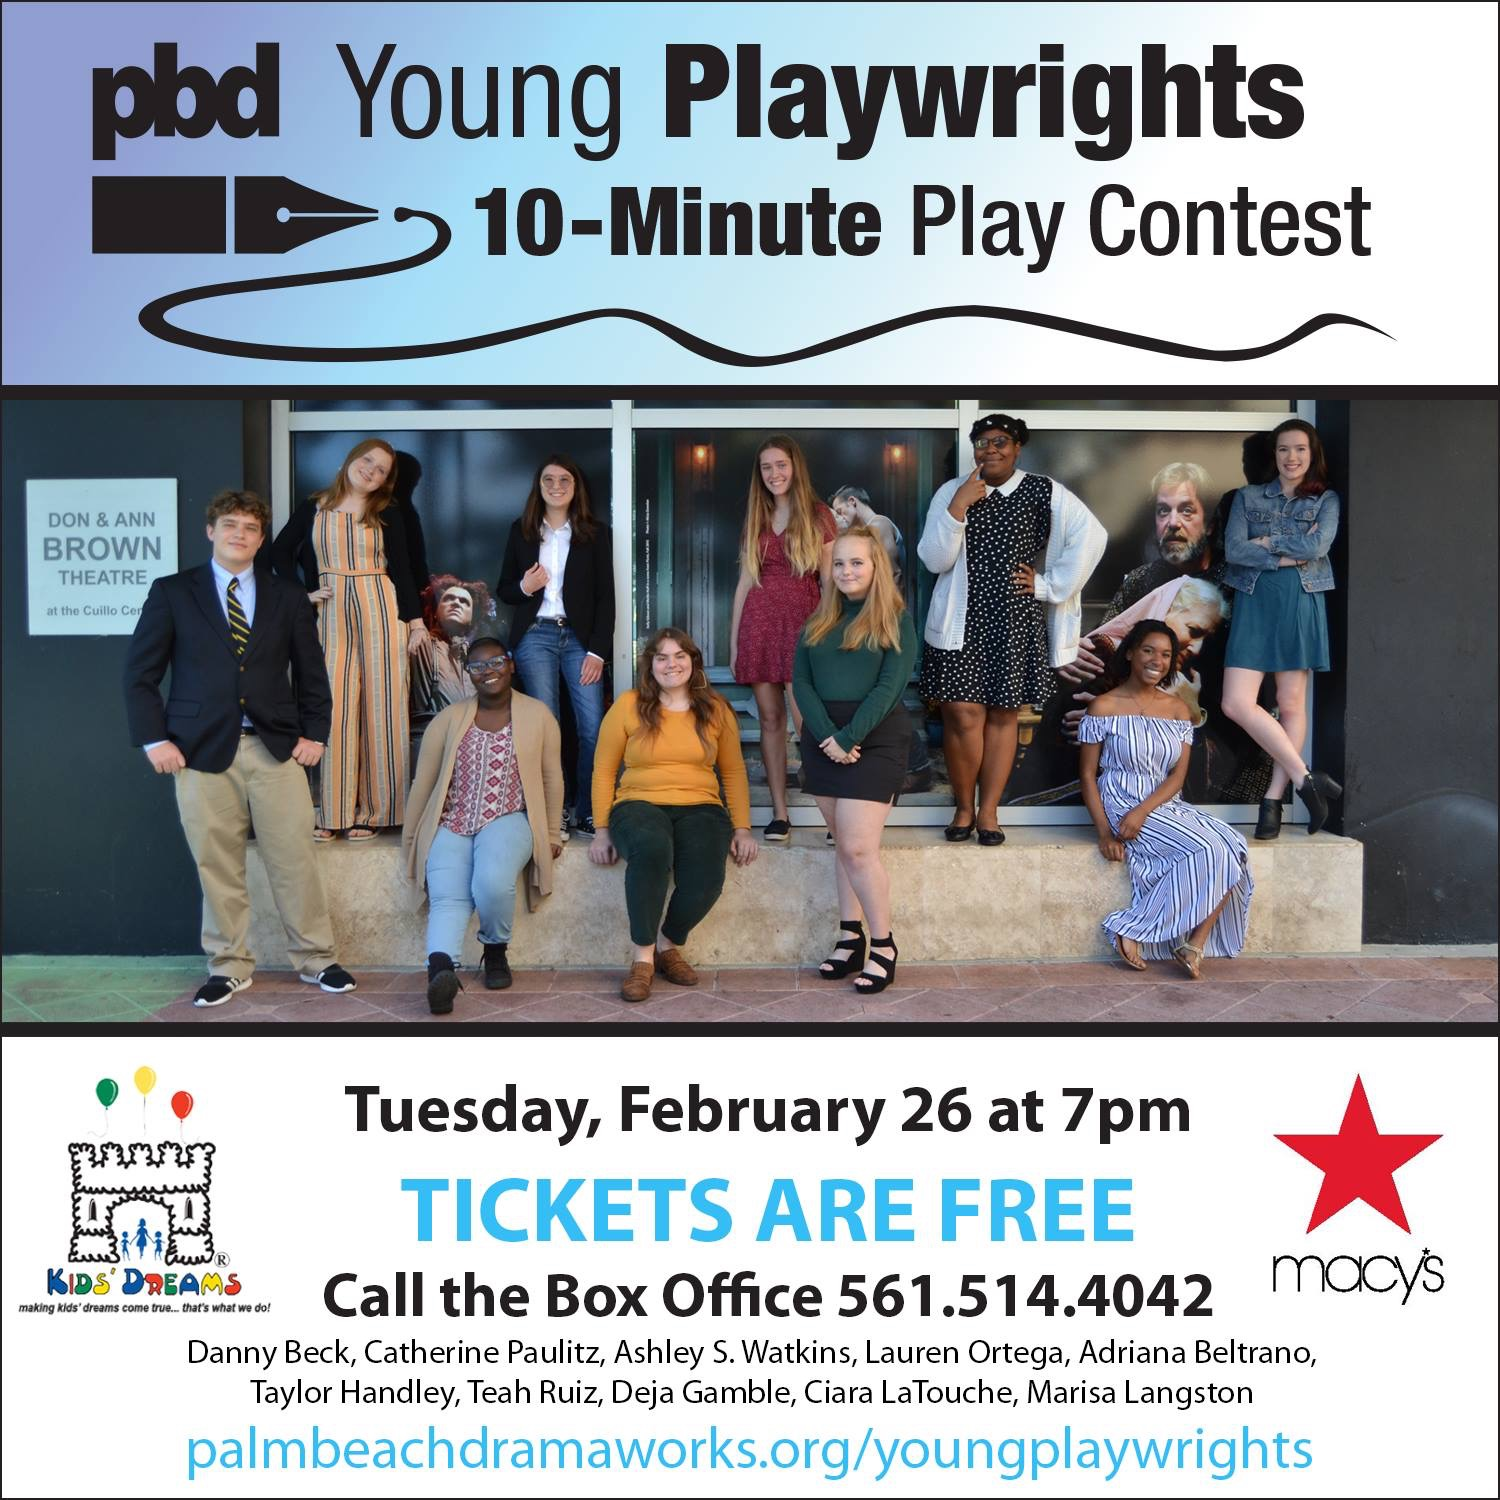 Senior Adriana Beltrano (third from left, bottom row) posing with the 2019 contestants of the Palm Beach Dramaworks Young Playwrights.